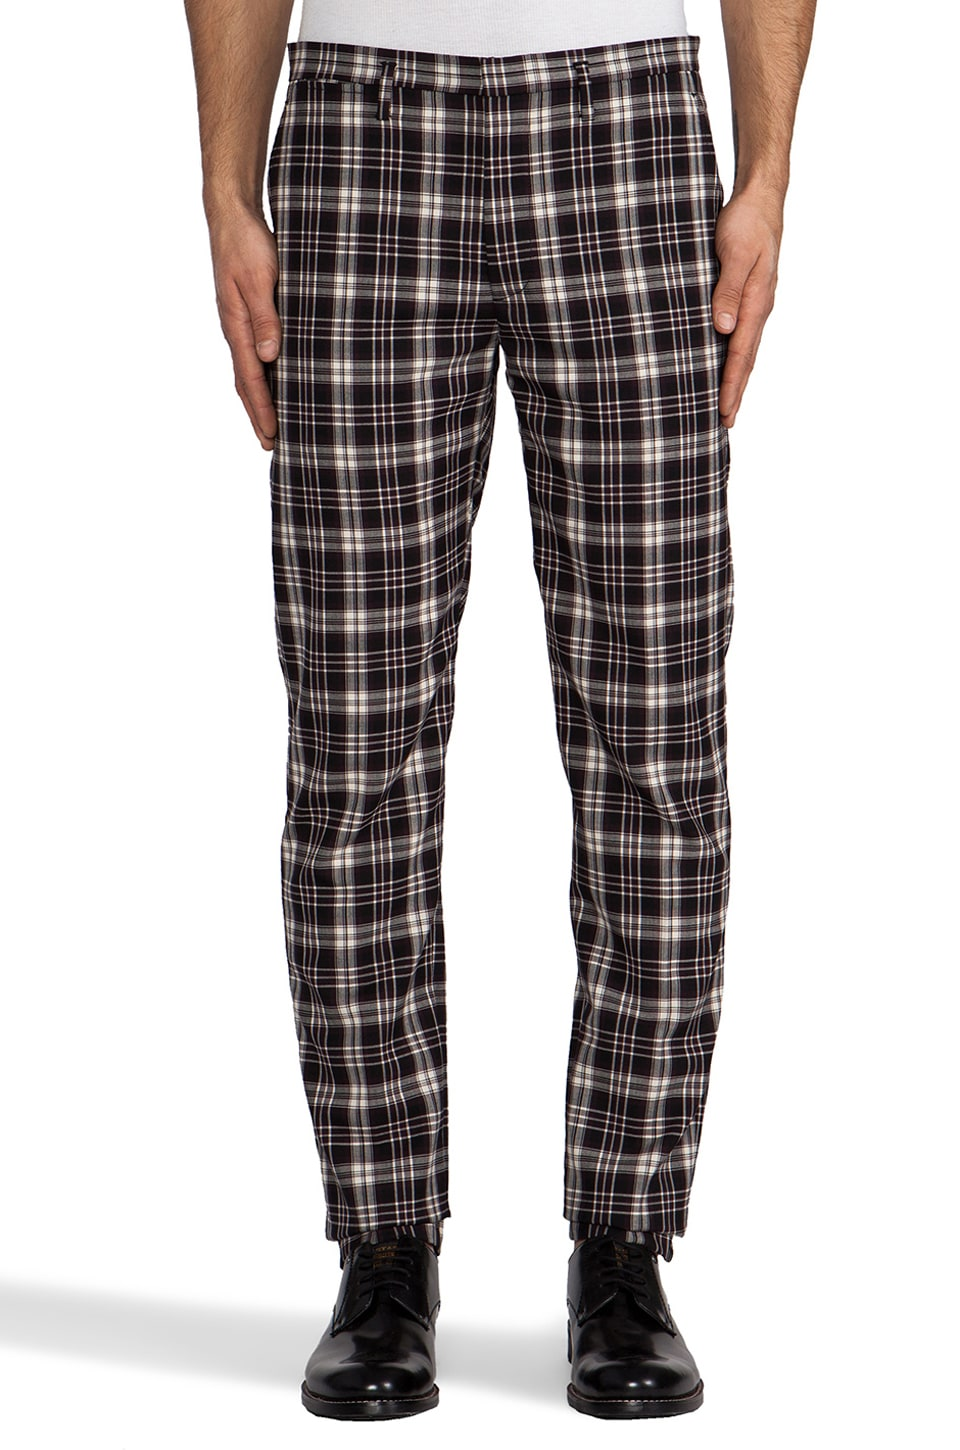 Marc by Marc Jacobs Bromley Plaid Trouser in Washed Ink Multi